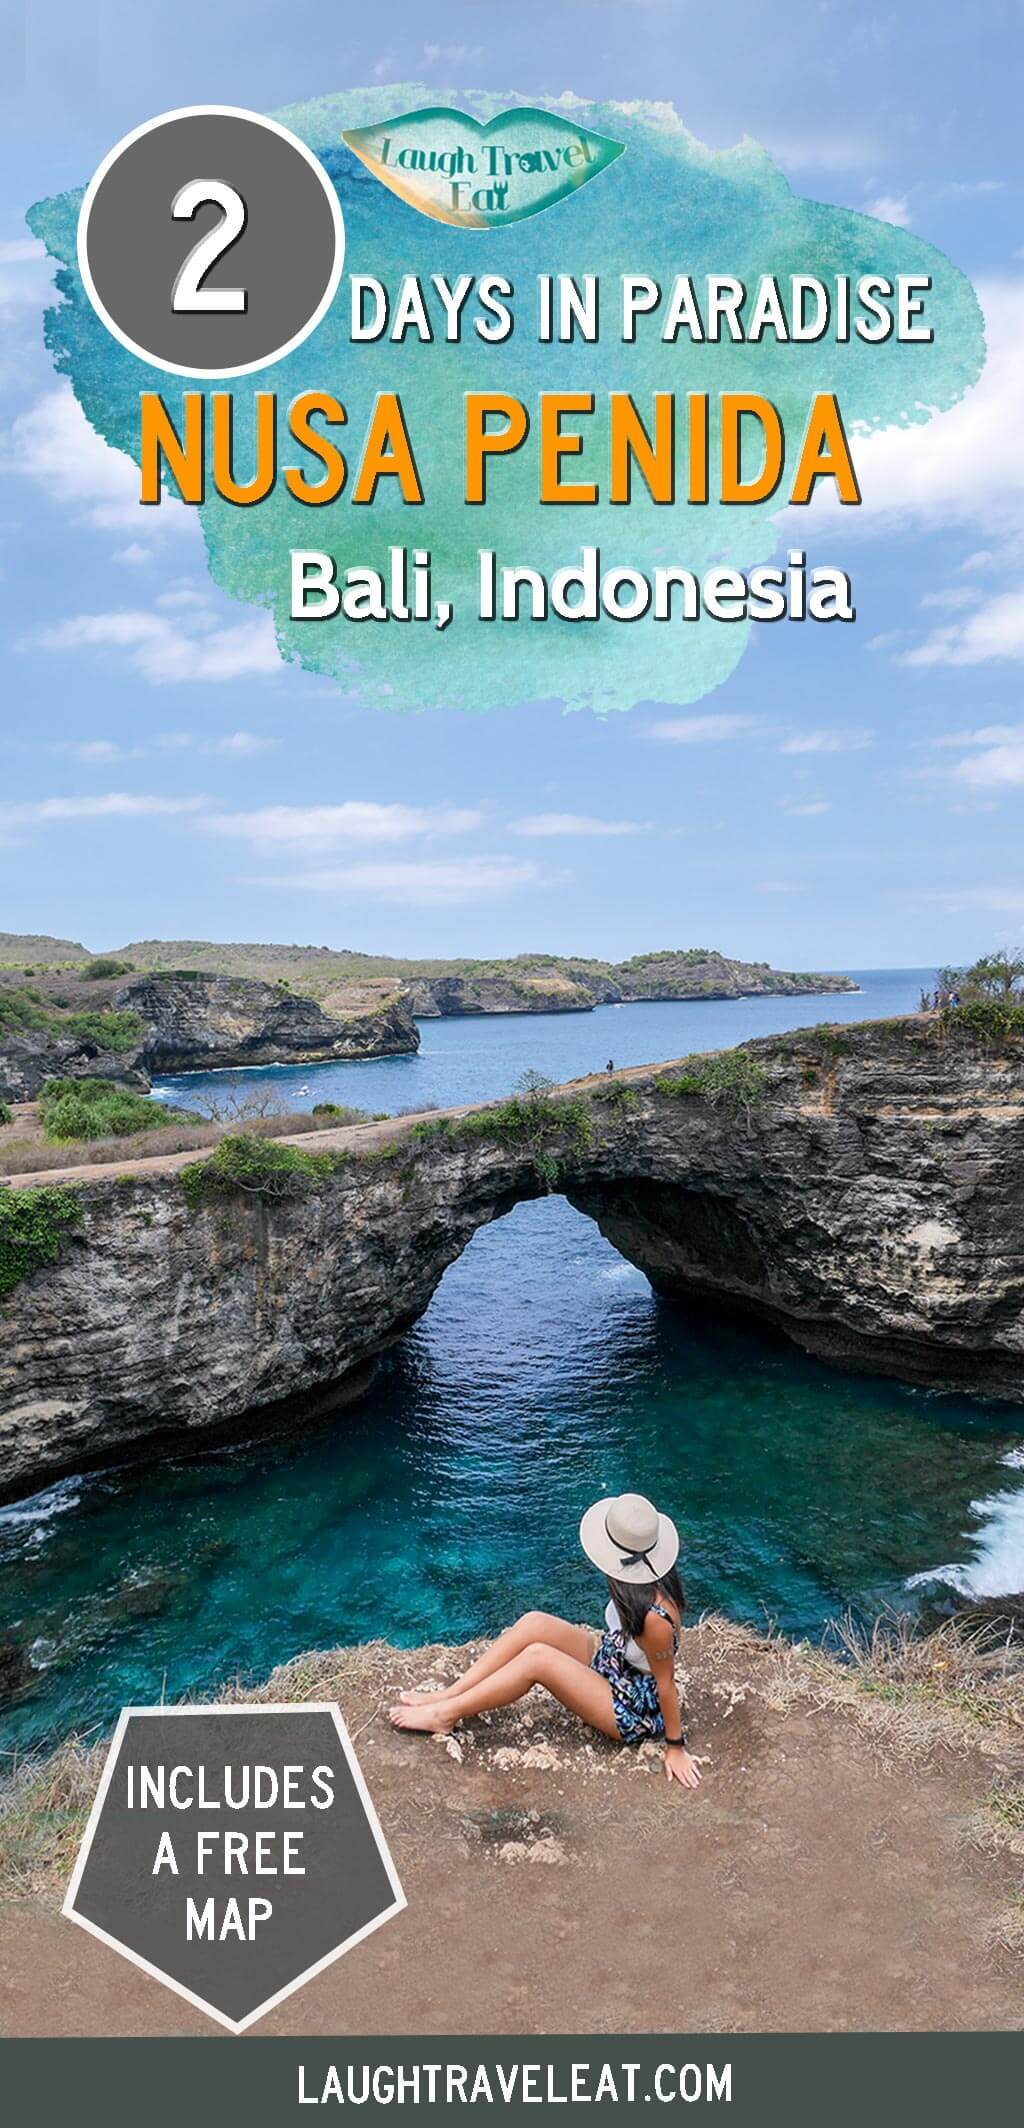 Nusa Penida has one of the best natural sights in Bali. It isn't easy to get around but here's how to visit Nusa Penida in 2 days: